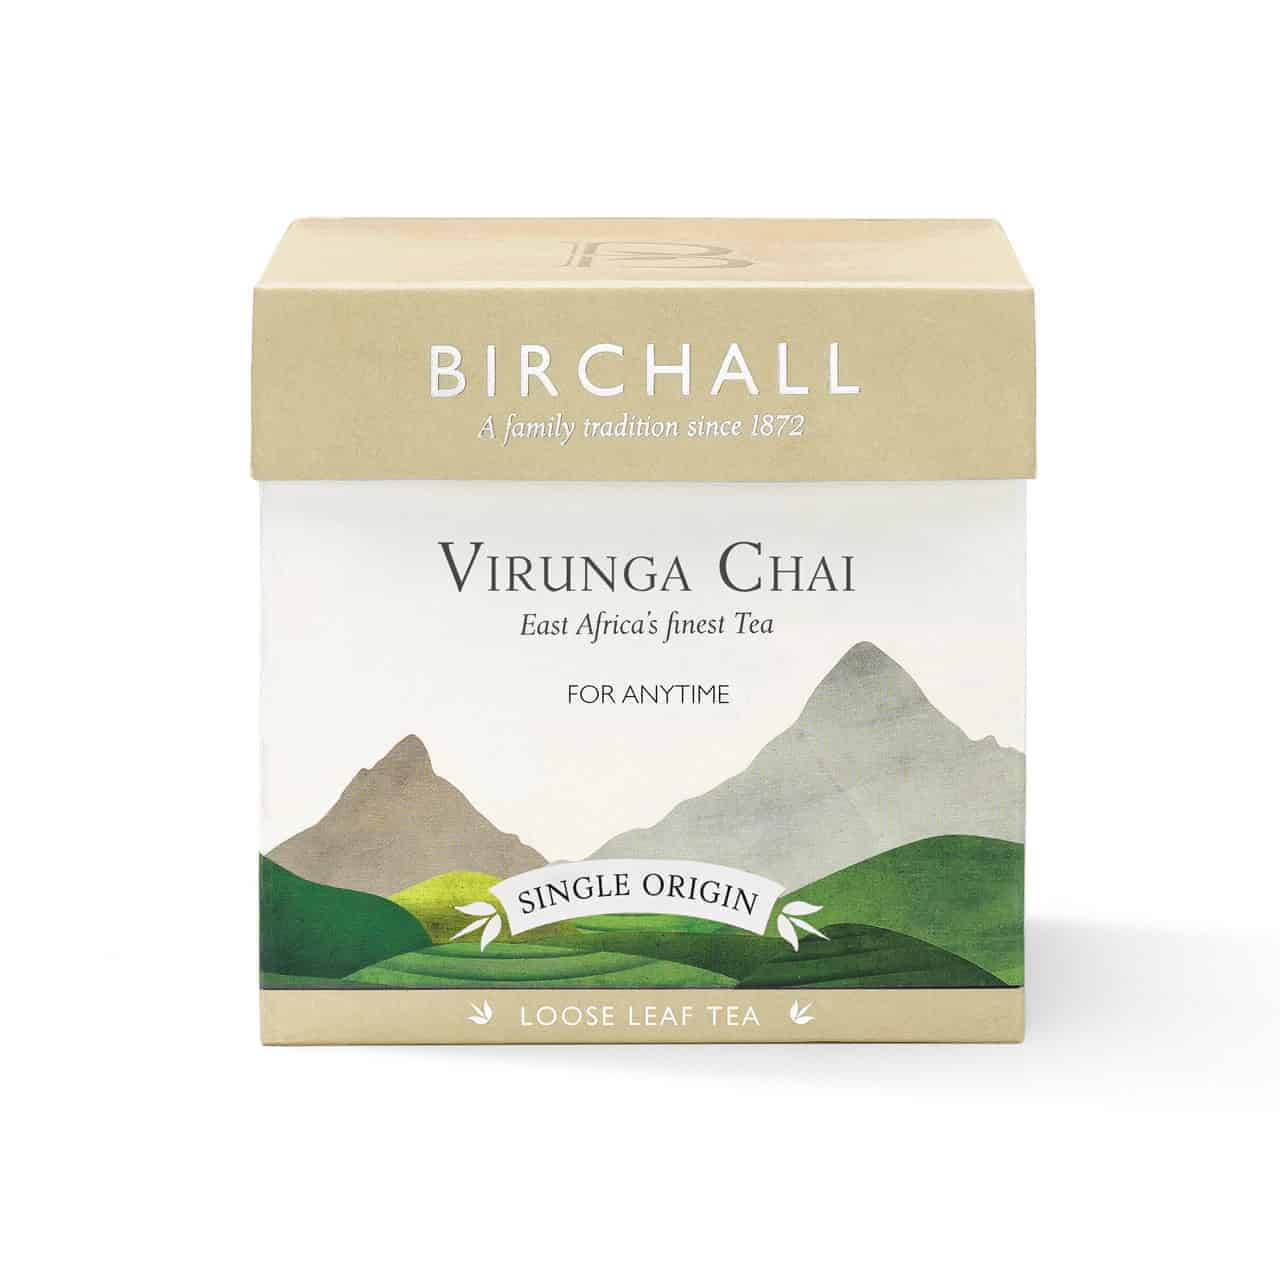 Birchall Virunga Chai - Loose Leaf Tea